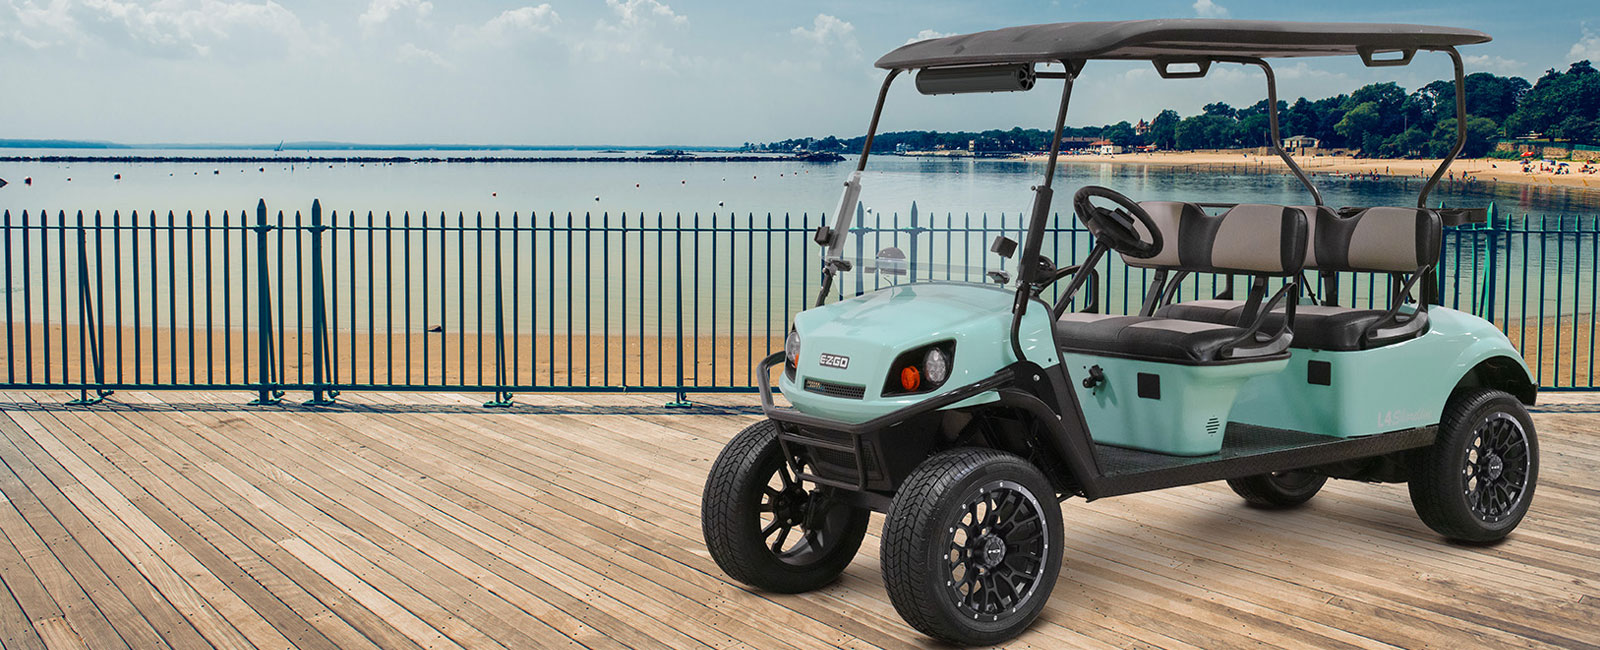 E-Z-GO Seafoam Green Golf Cart 4 Passenger